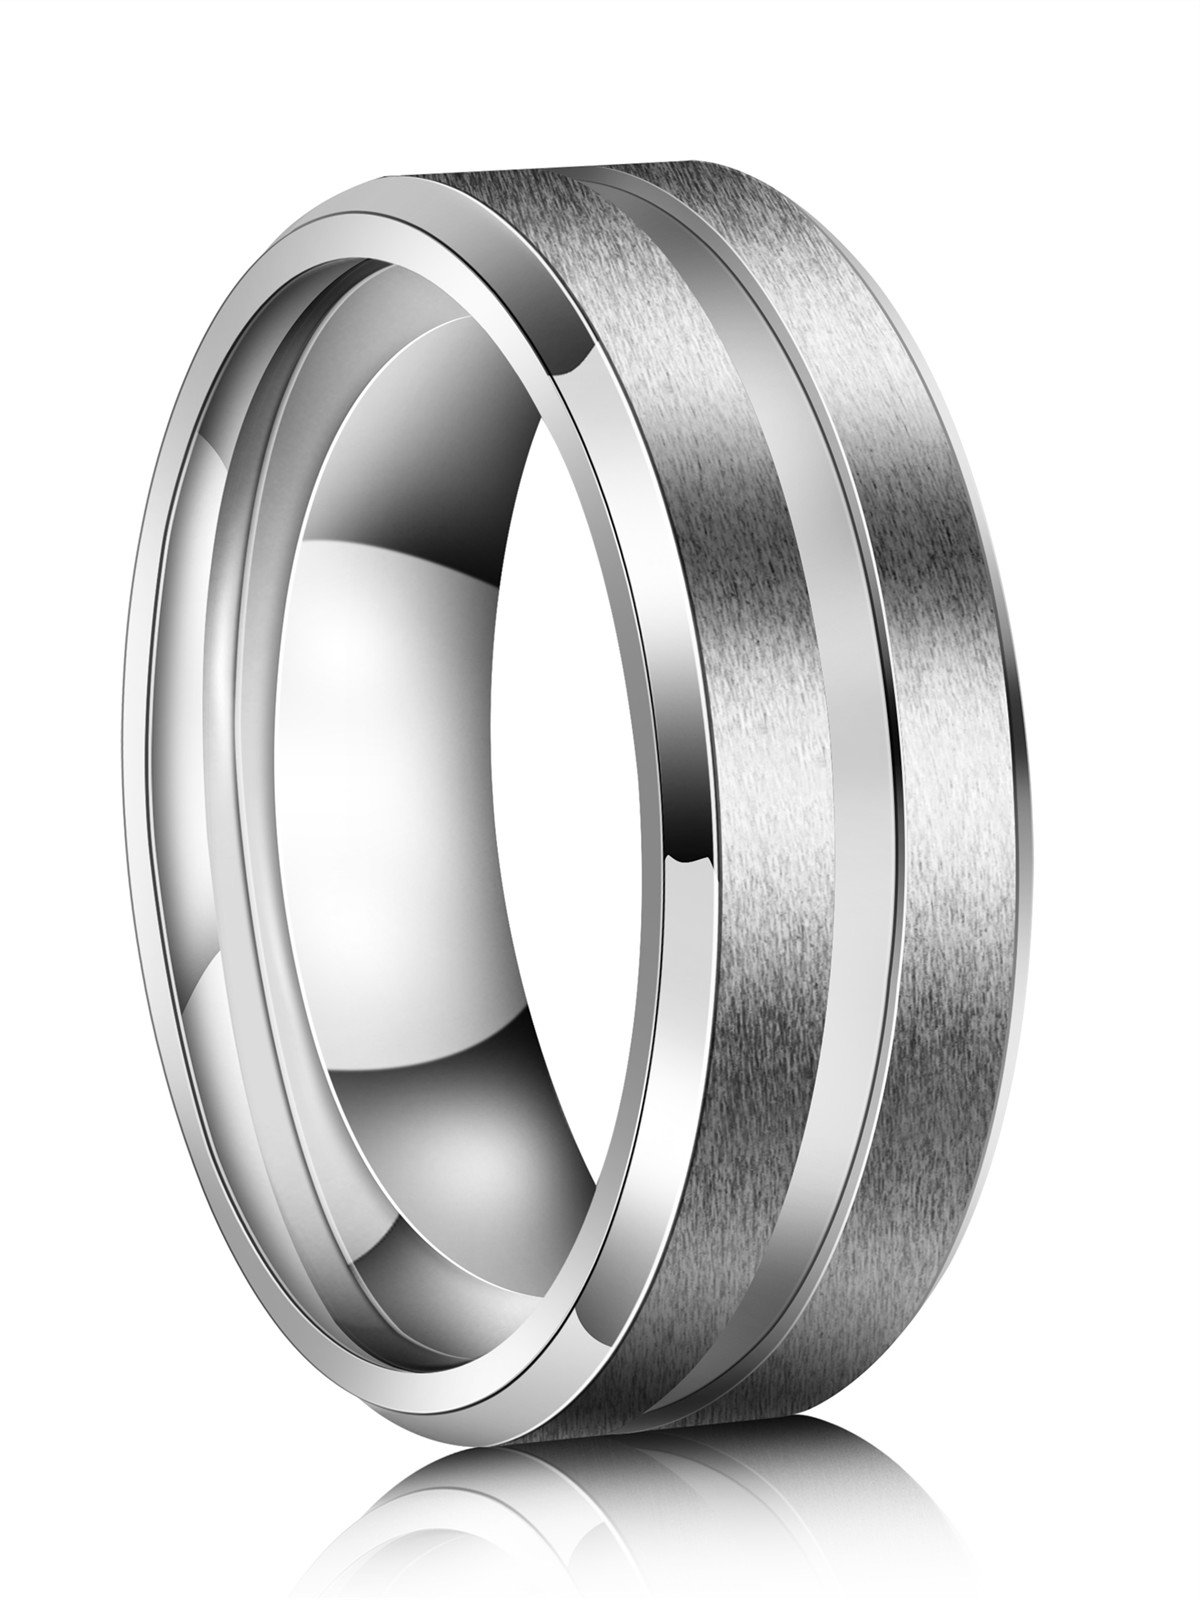 Just Lsy 8mm Titanium Rings for Men Women Beveled Edges High Polished Grooved Center/Matte Finish Wedding Band in Comfort Fit Size 10 Lsy-004 by Just Lsy (Image #2)